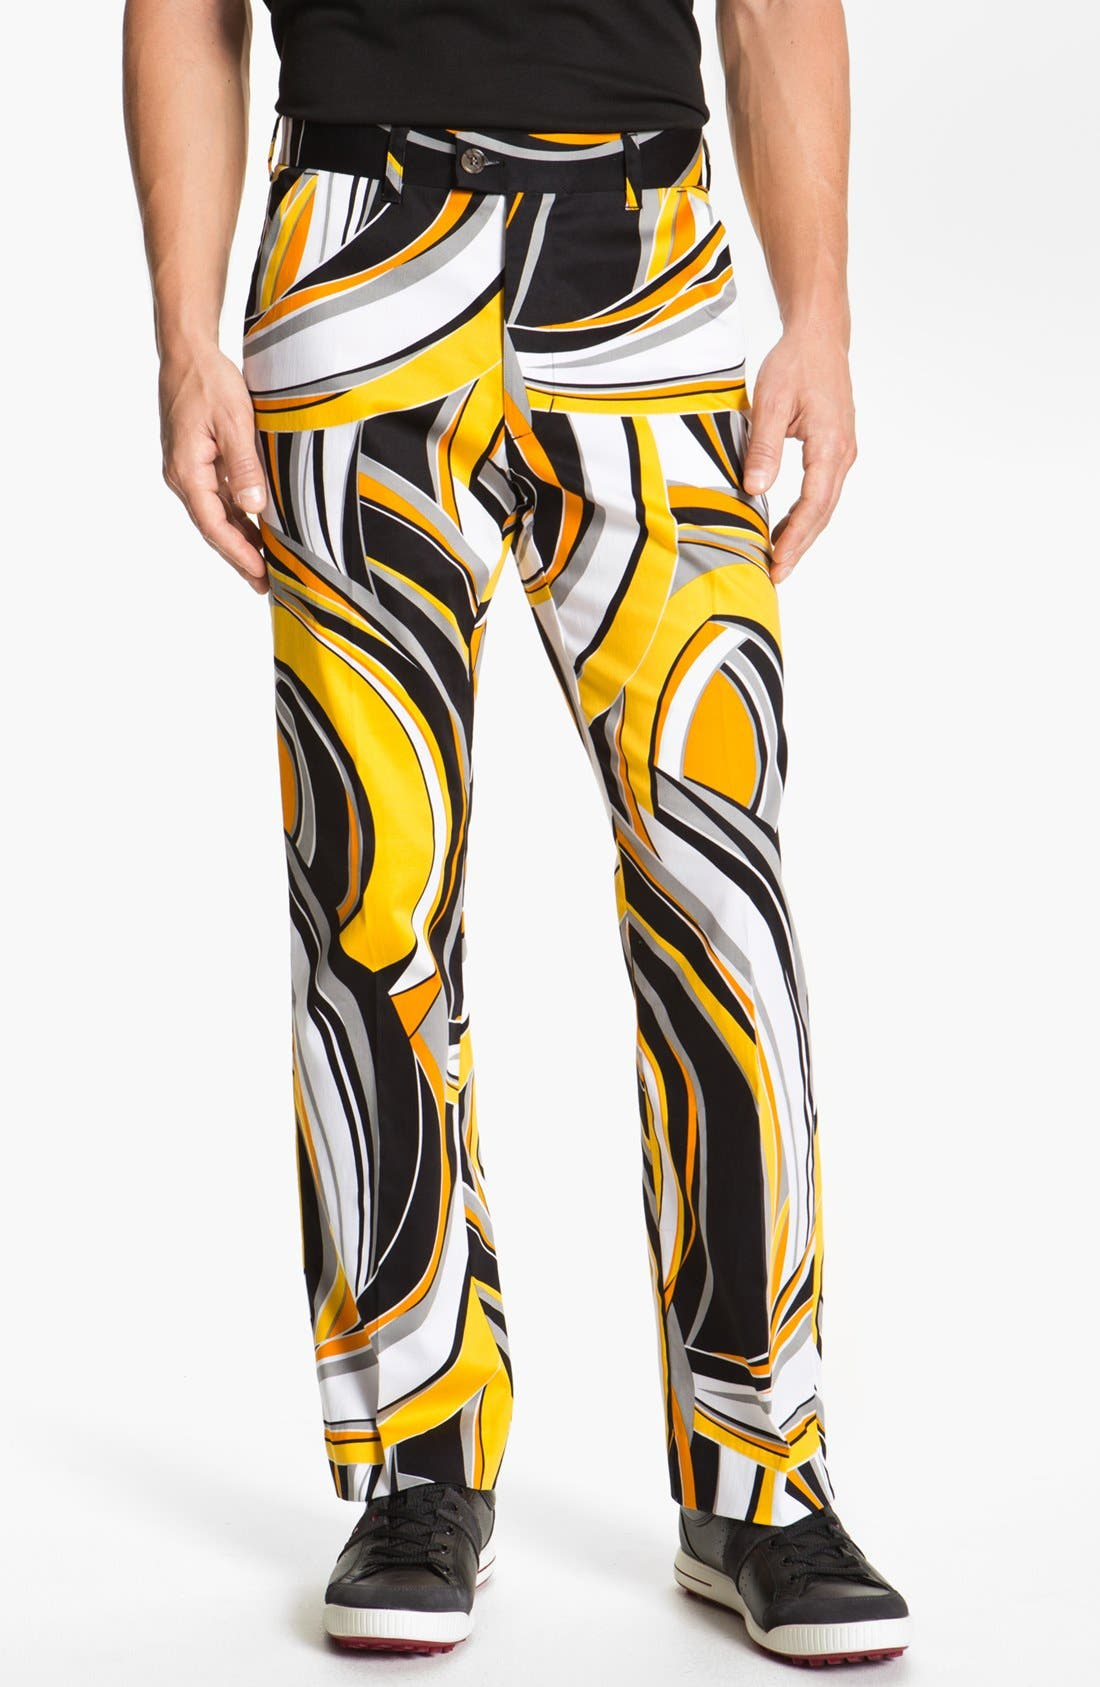 LOUD MOUTH GOLF Loudmouth Golf 'Swirls Gone Wild' Golf Pants, Main, color, 700